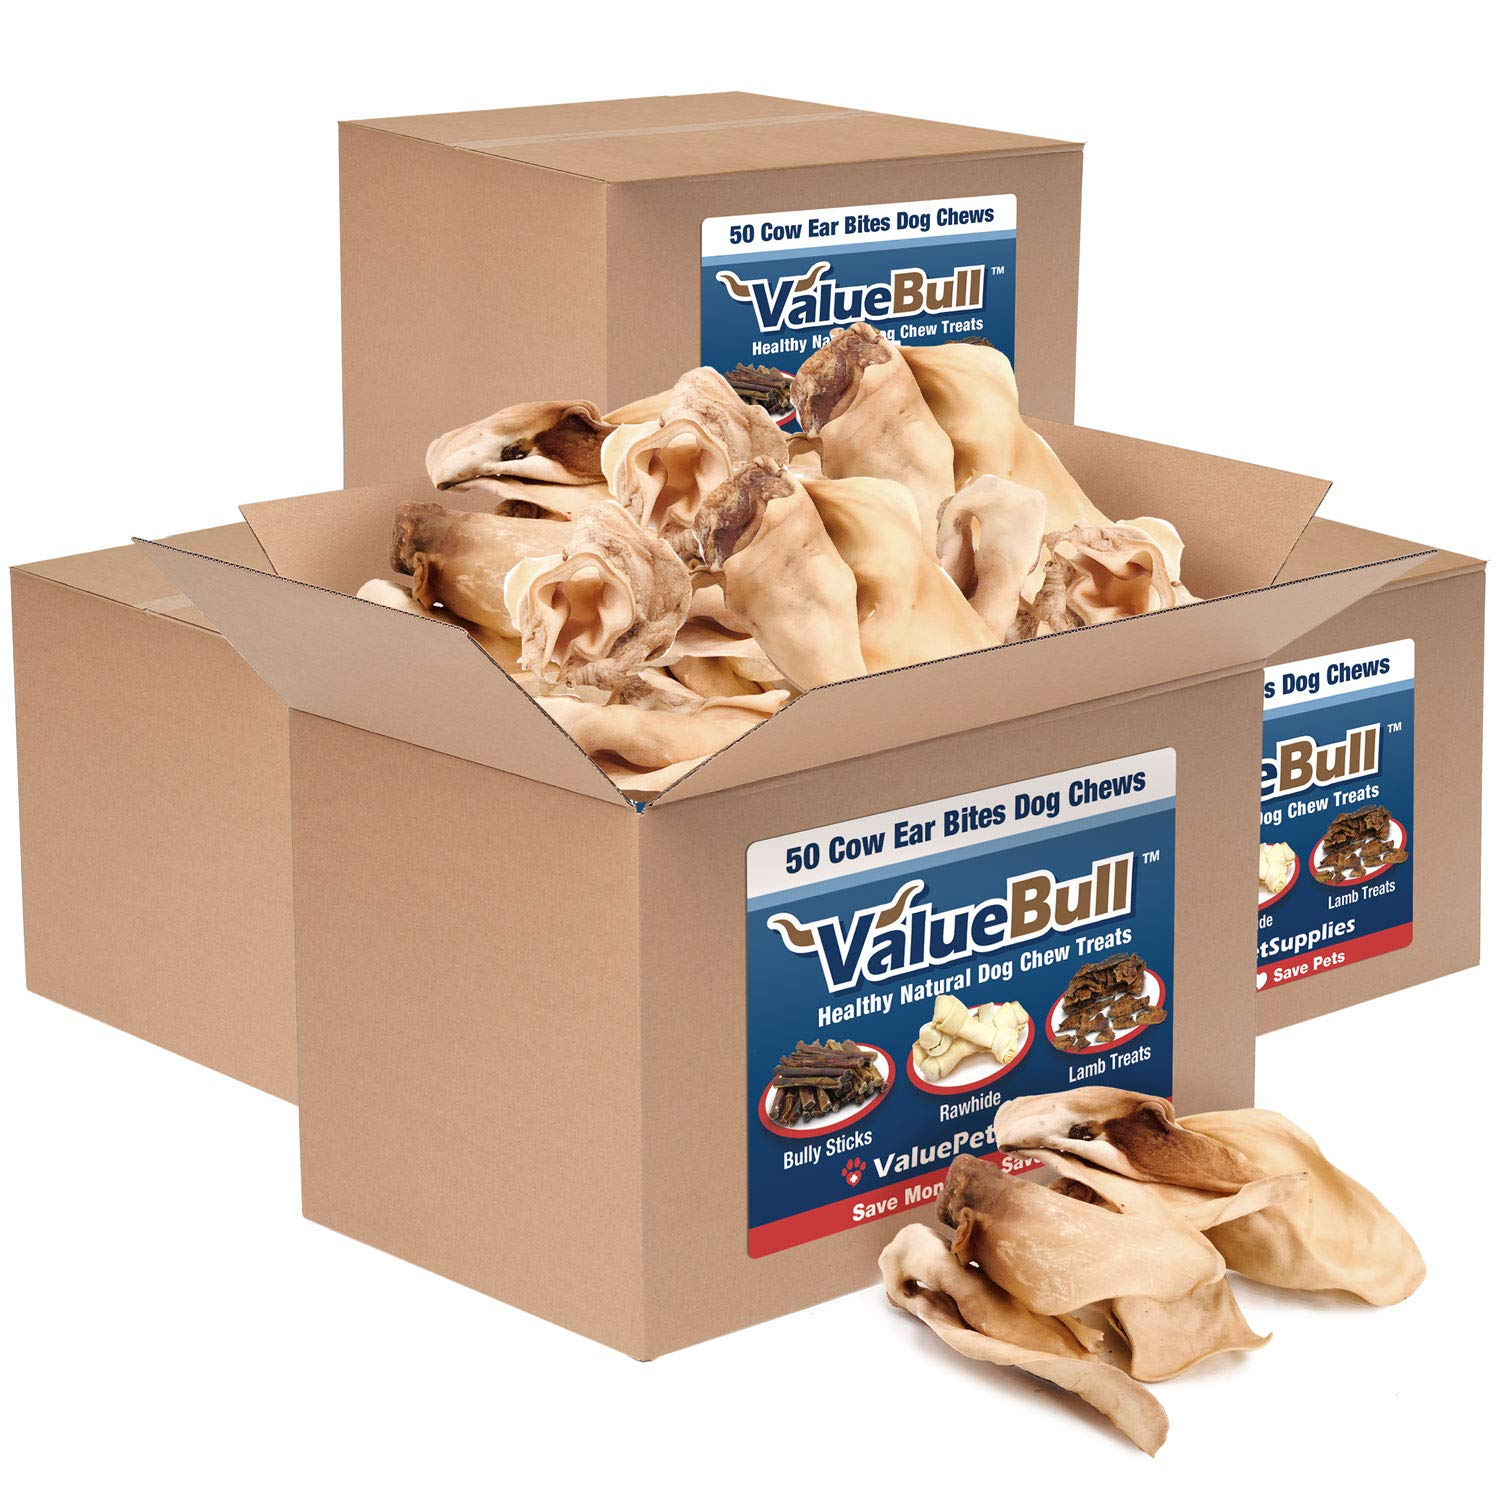 ValueBull Premium Cow Ears, Varied Shapes, 200 Count - Angus Beef Dog Chews, Grass-Fed, Steroid-Free